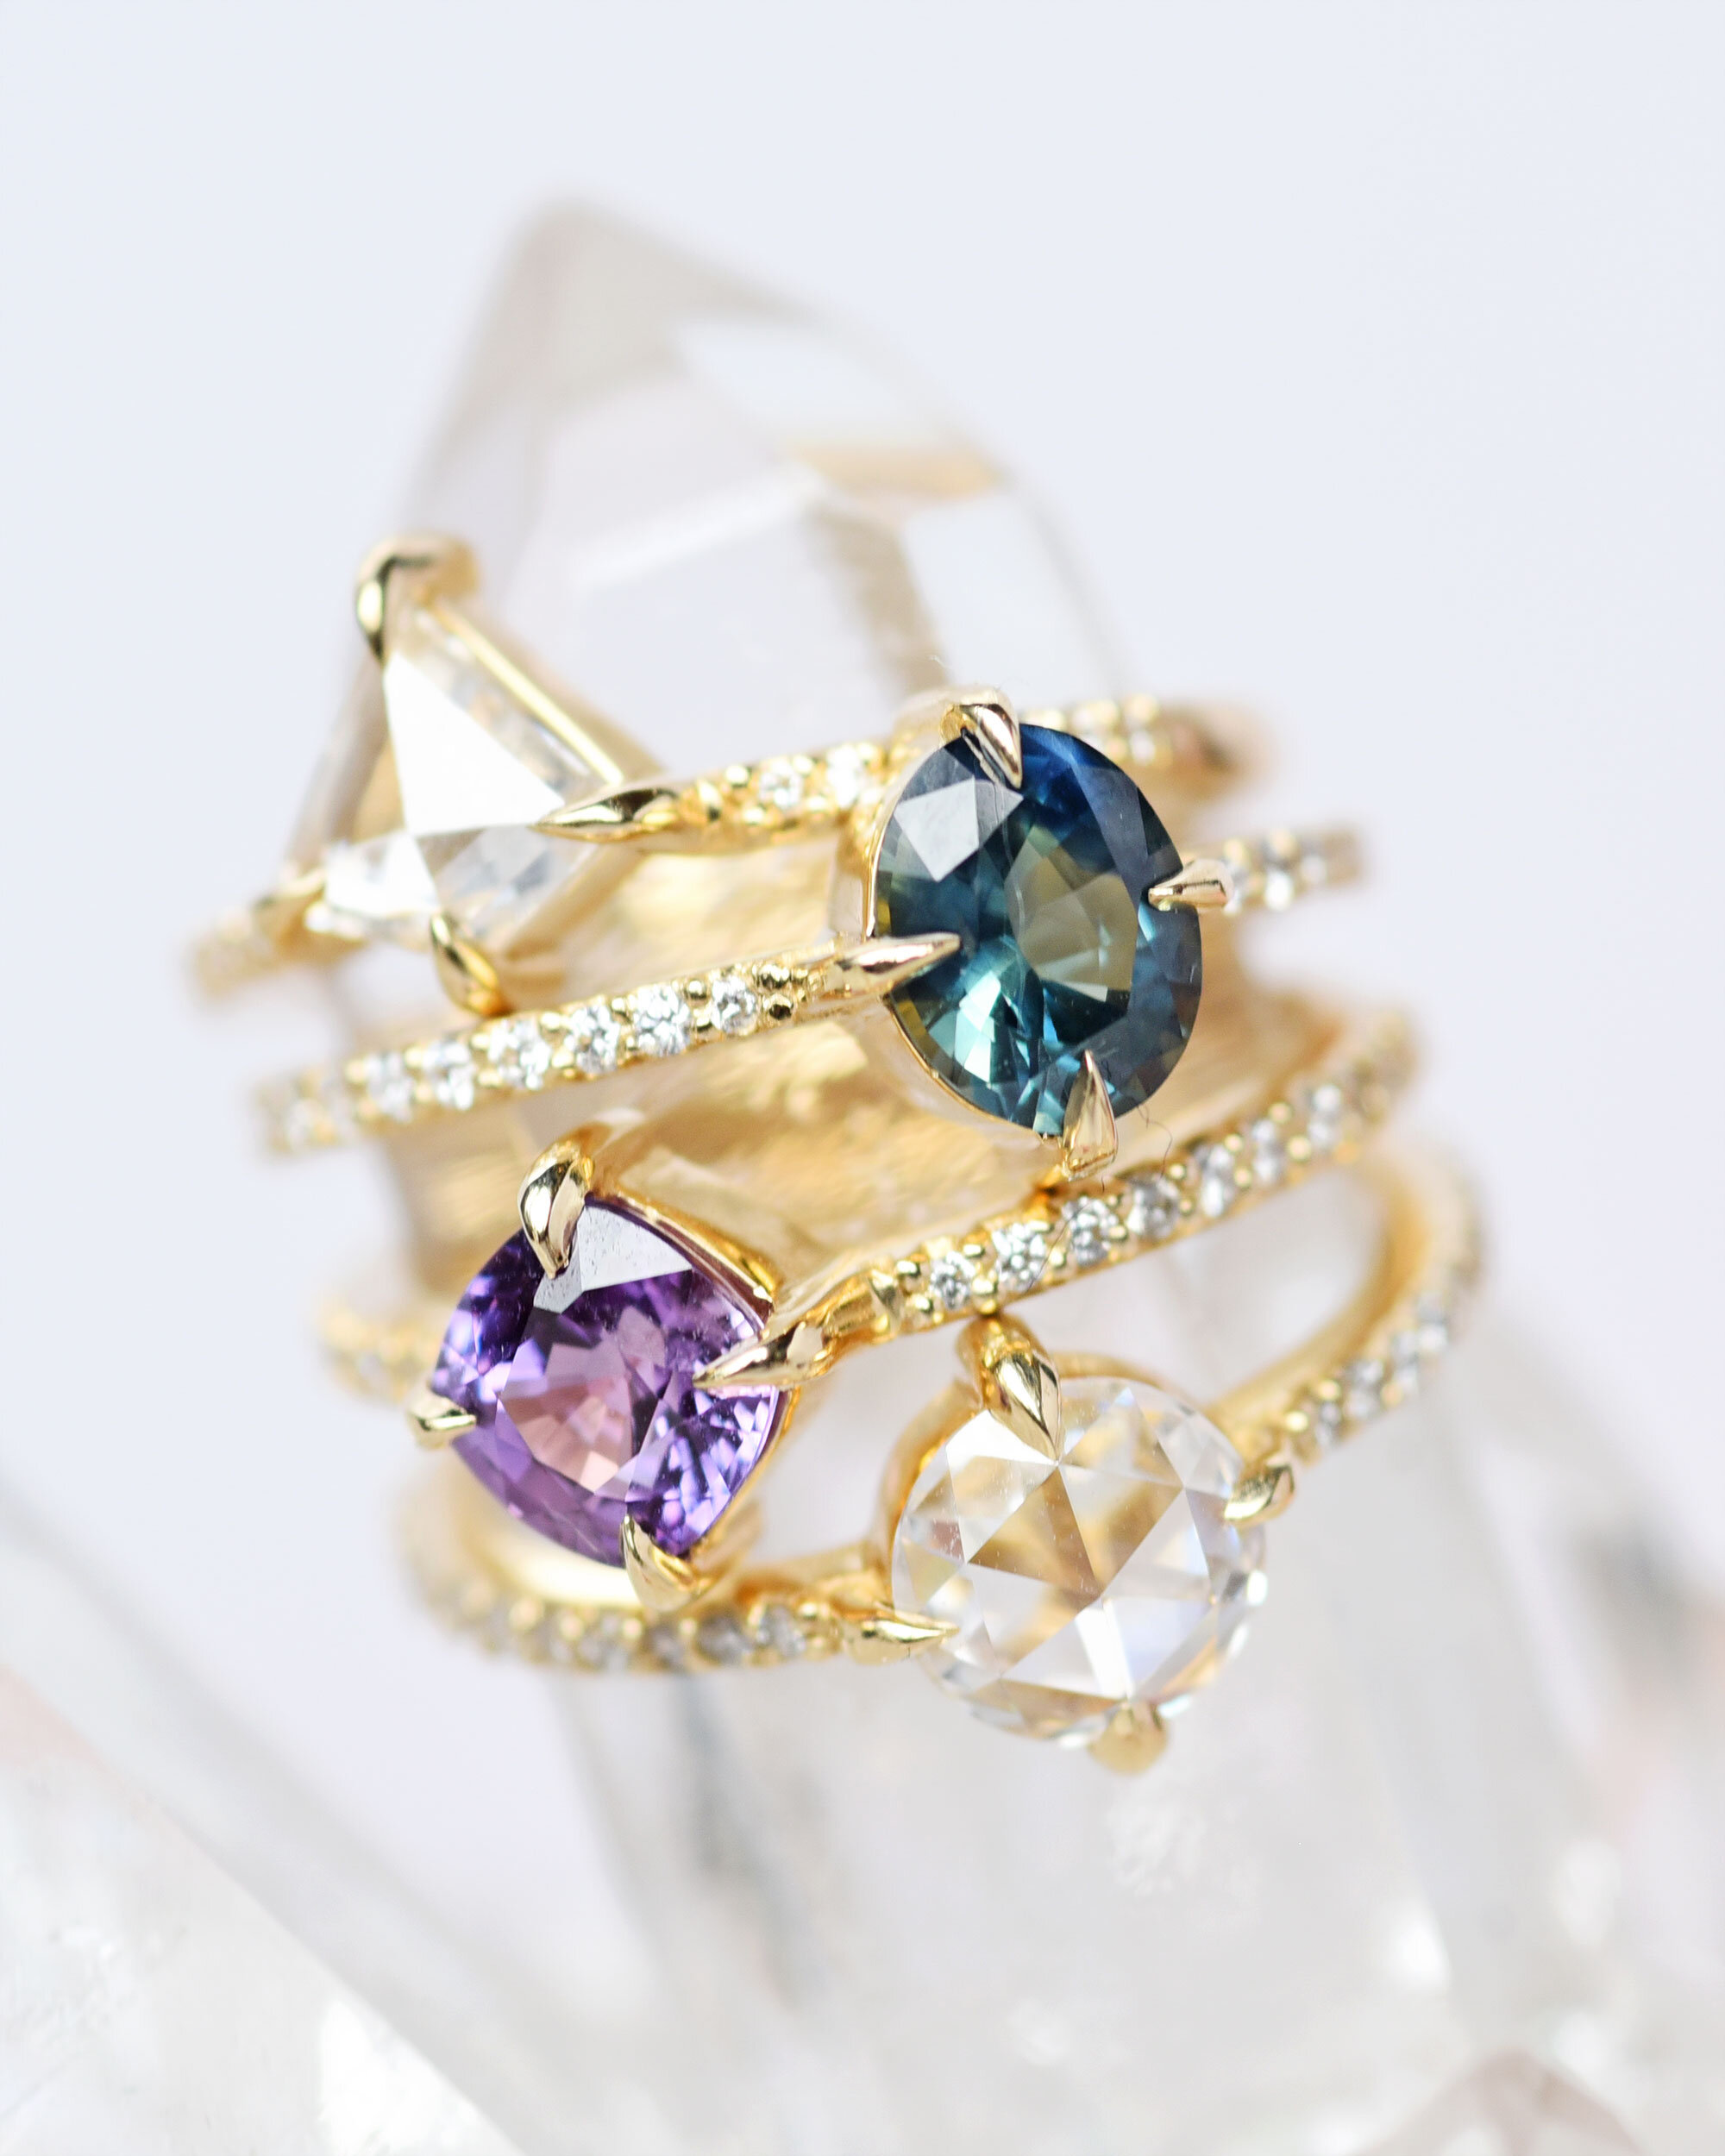 Diamond and Gemstone Wedding Engagement Rings by Valerie Madison Jewelry Seattle